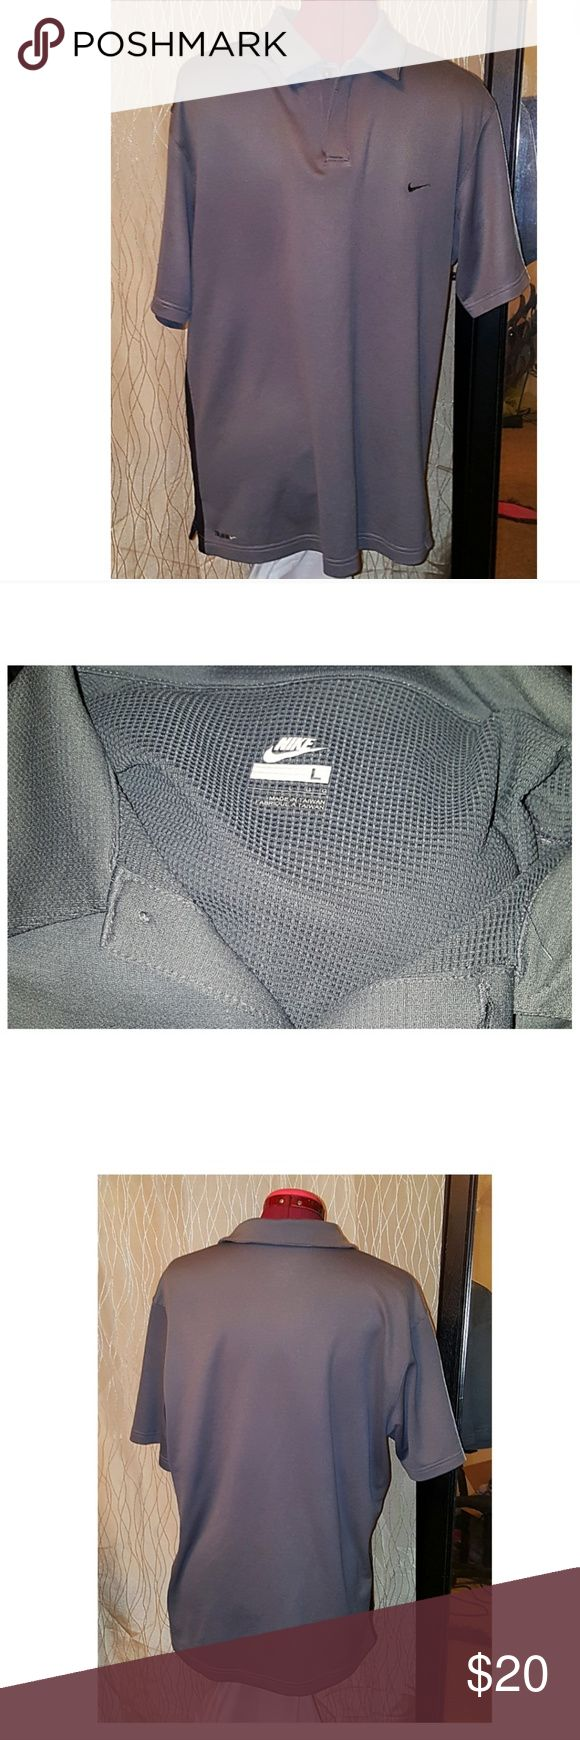 NIKE Polo Shirt NIKE Polo Shirt  EUC! Gray with black stripe running down each side, buttons all intact. Make an offer or hit buy now! Rock'N Ship is a Top 10% Seller on Poshmark and we add new items weekly. We are a Poshmark Ambassador, we buy and sell, shipping out almost daily. Please like or share our closet! Nike Shirts Casual Button Down Shirts